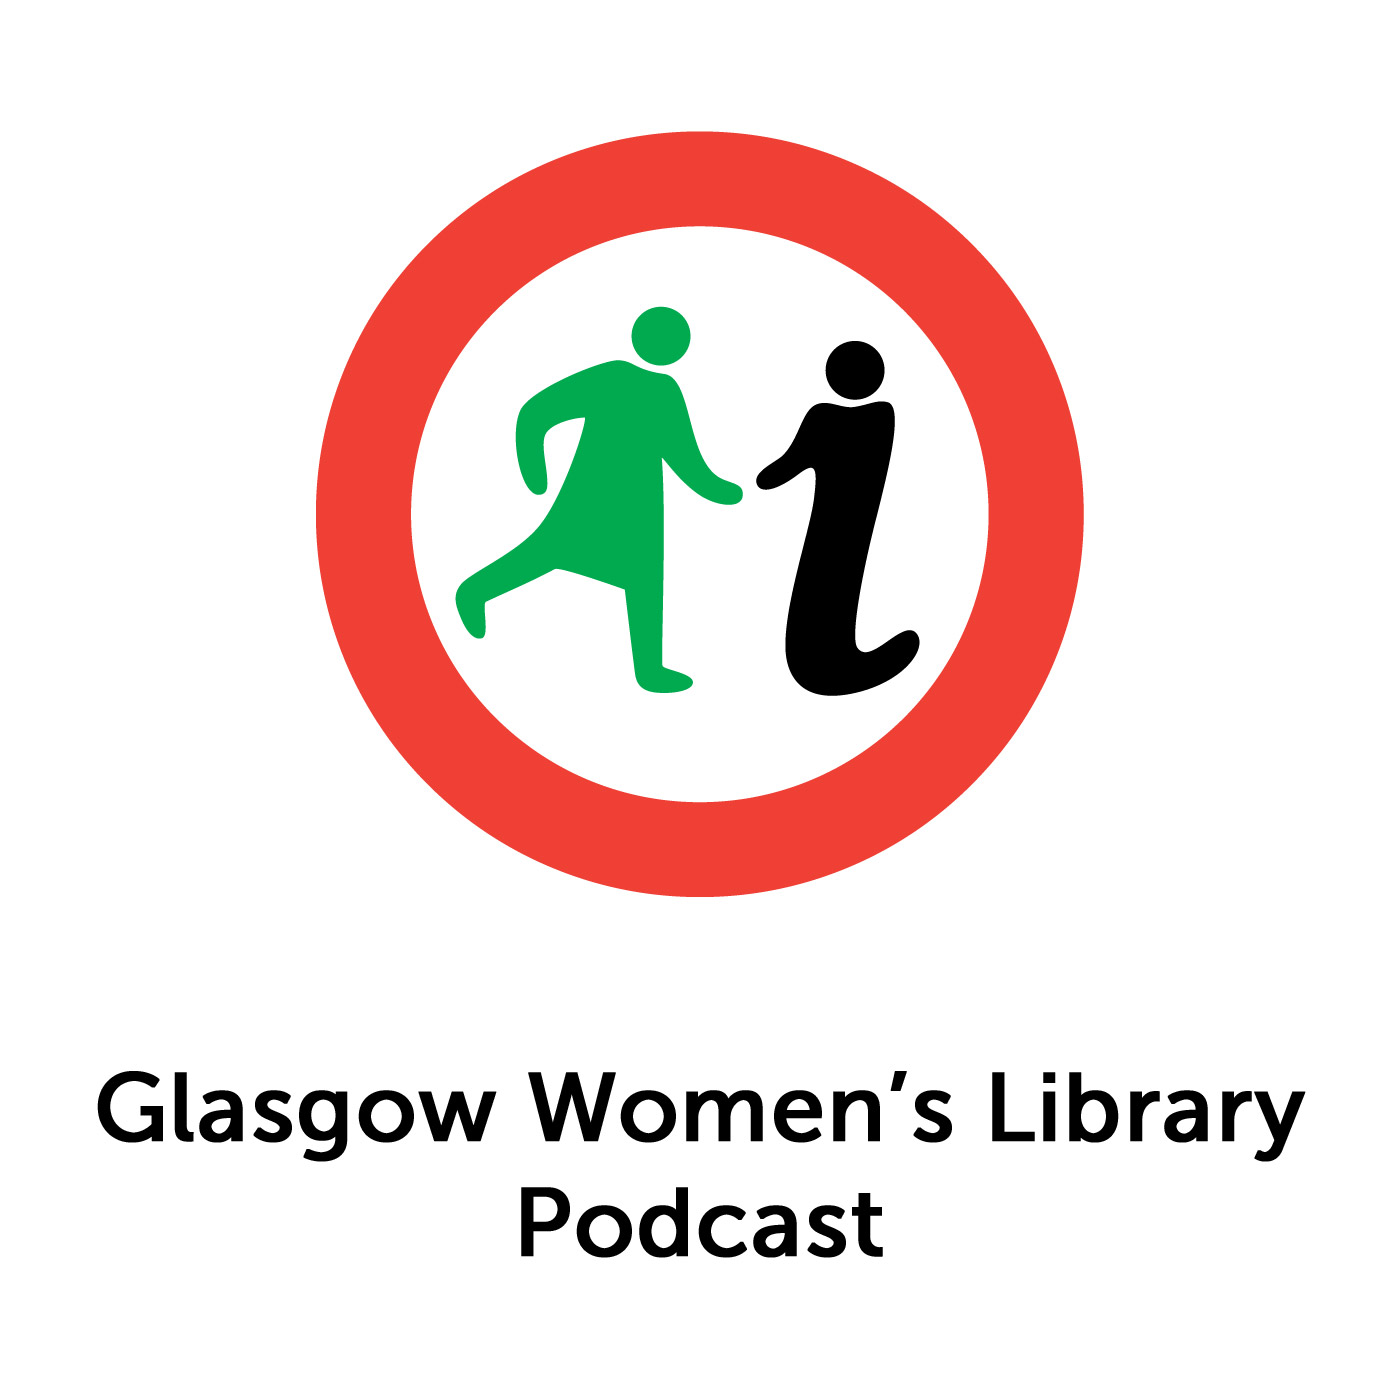 Glasgow Women's Library Podcast